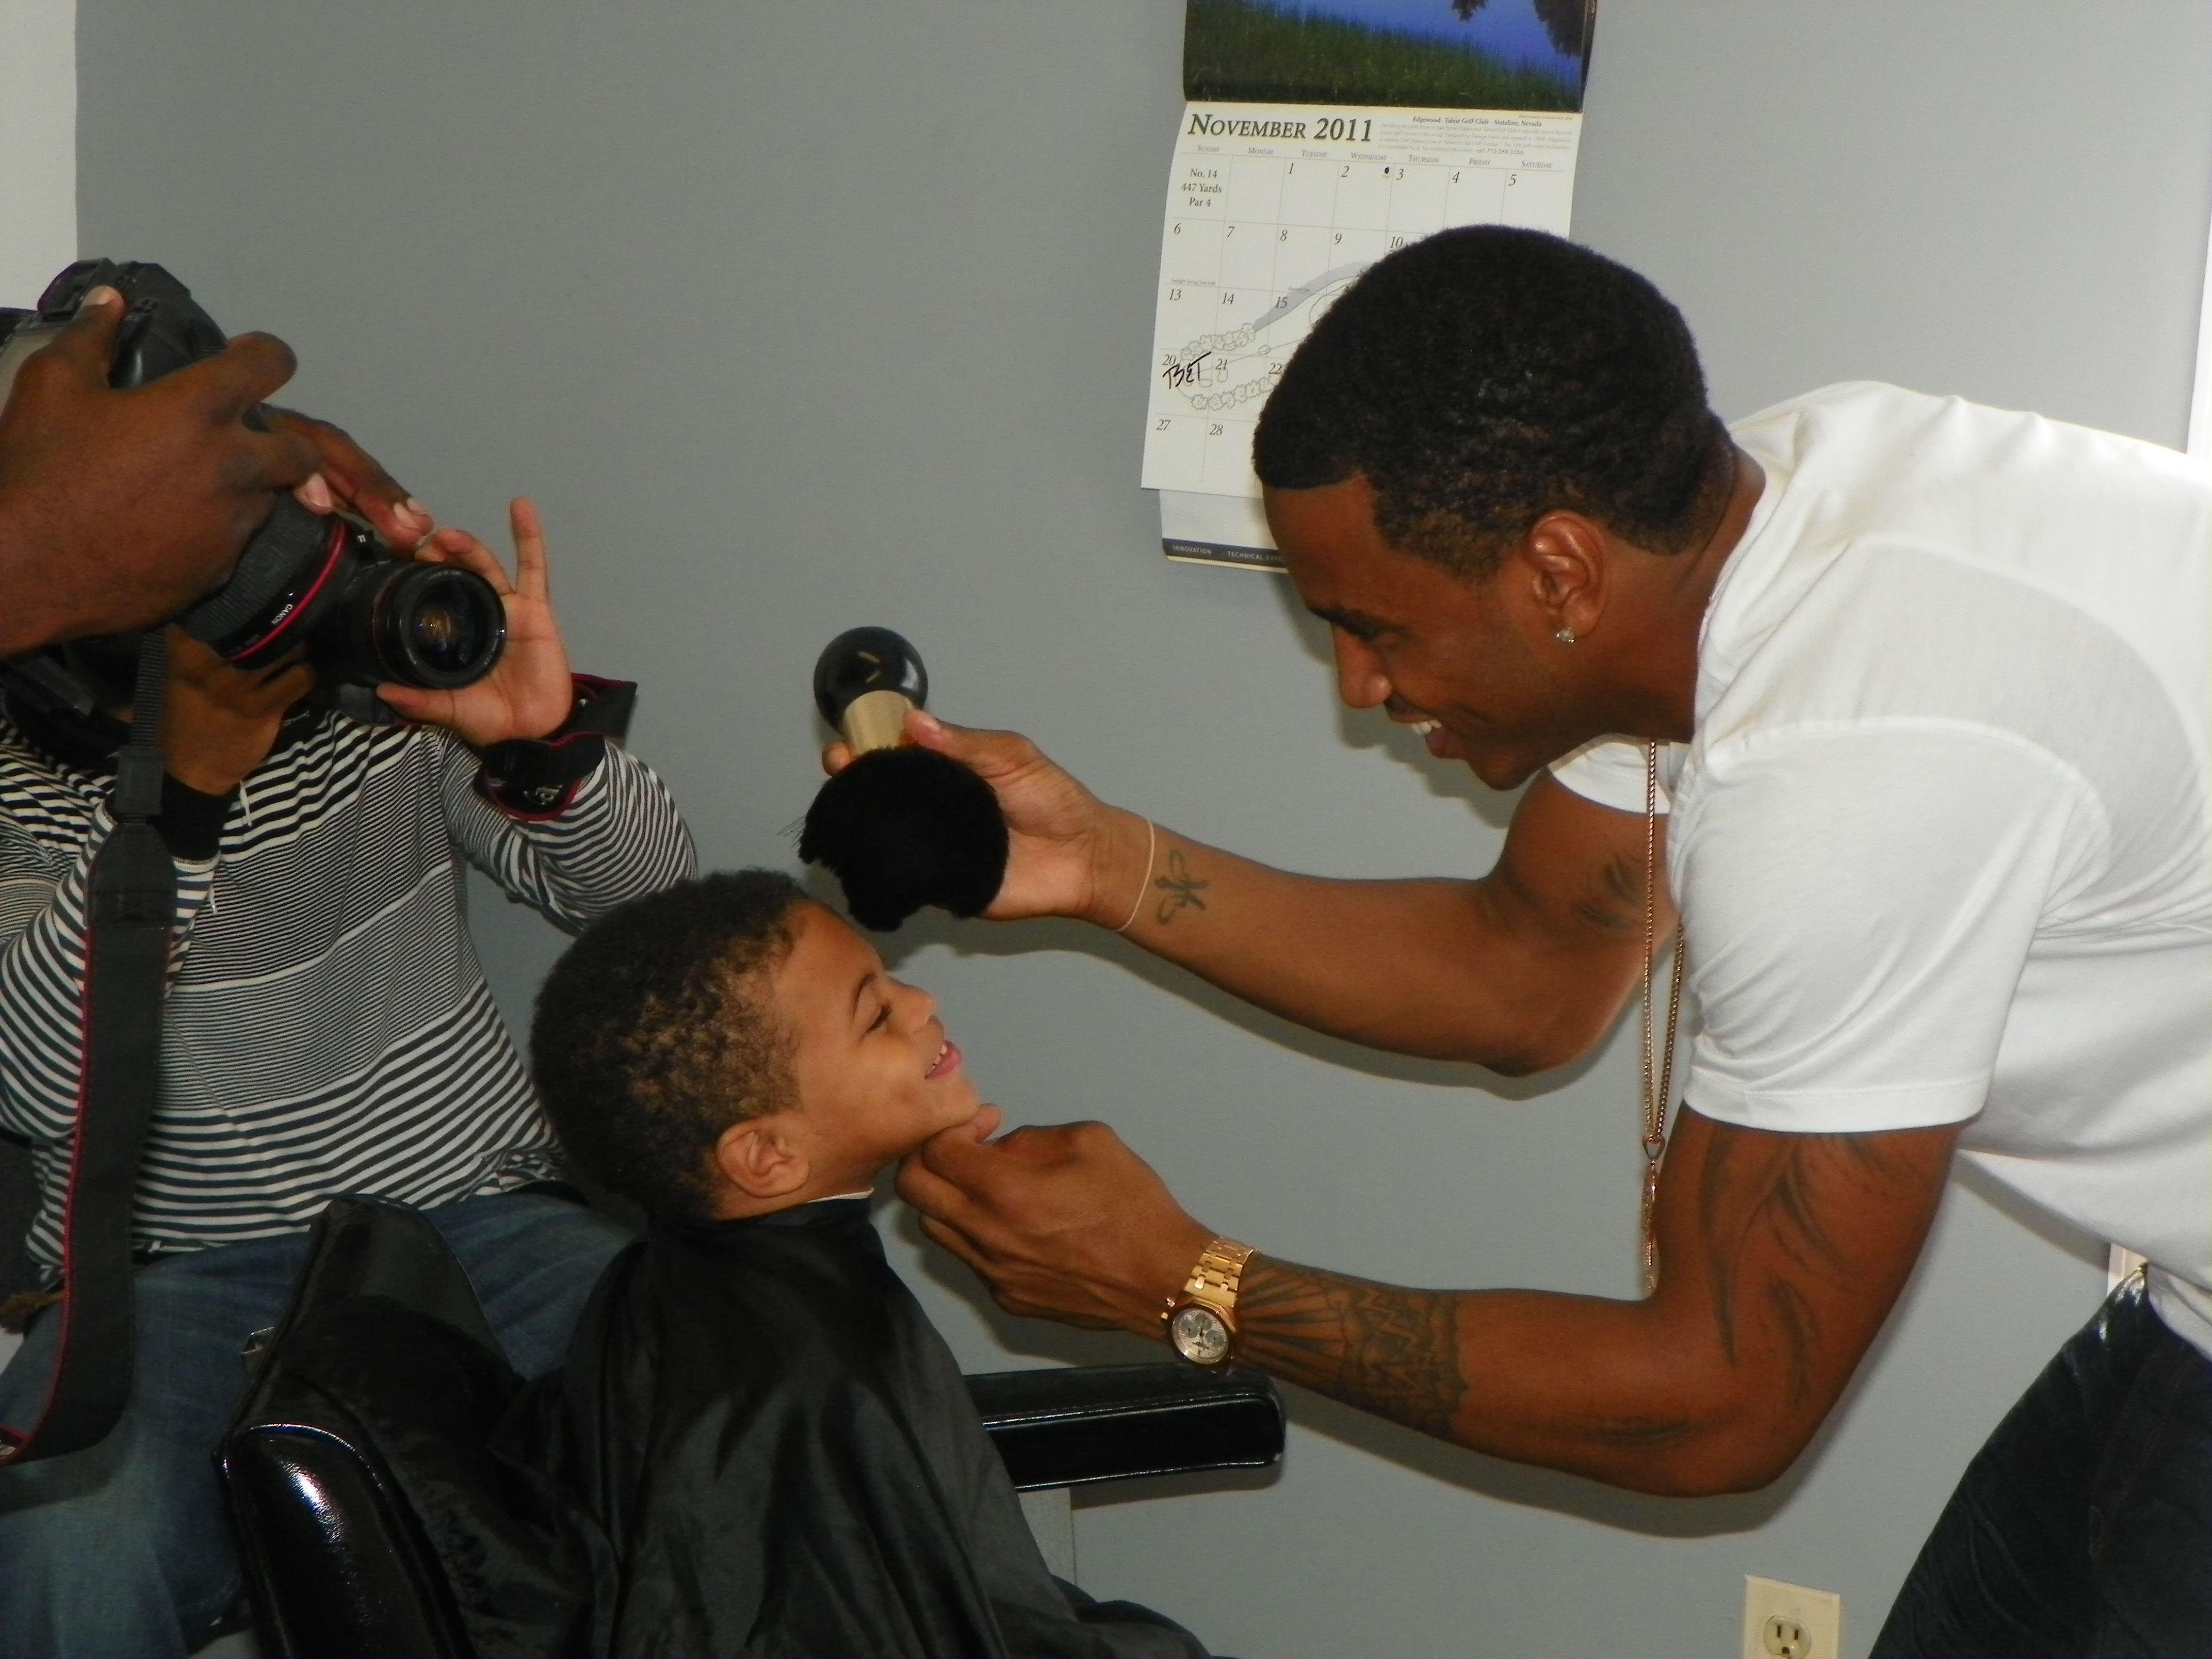 Trey Songz giving back to the community